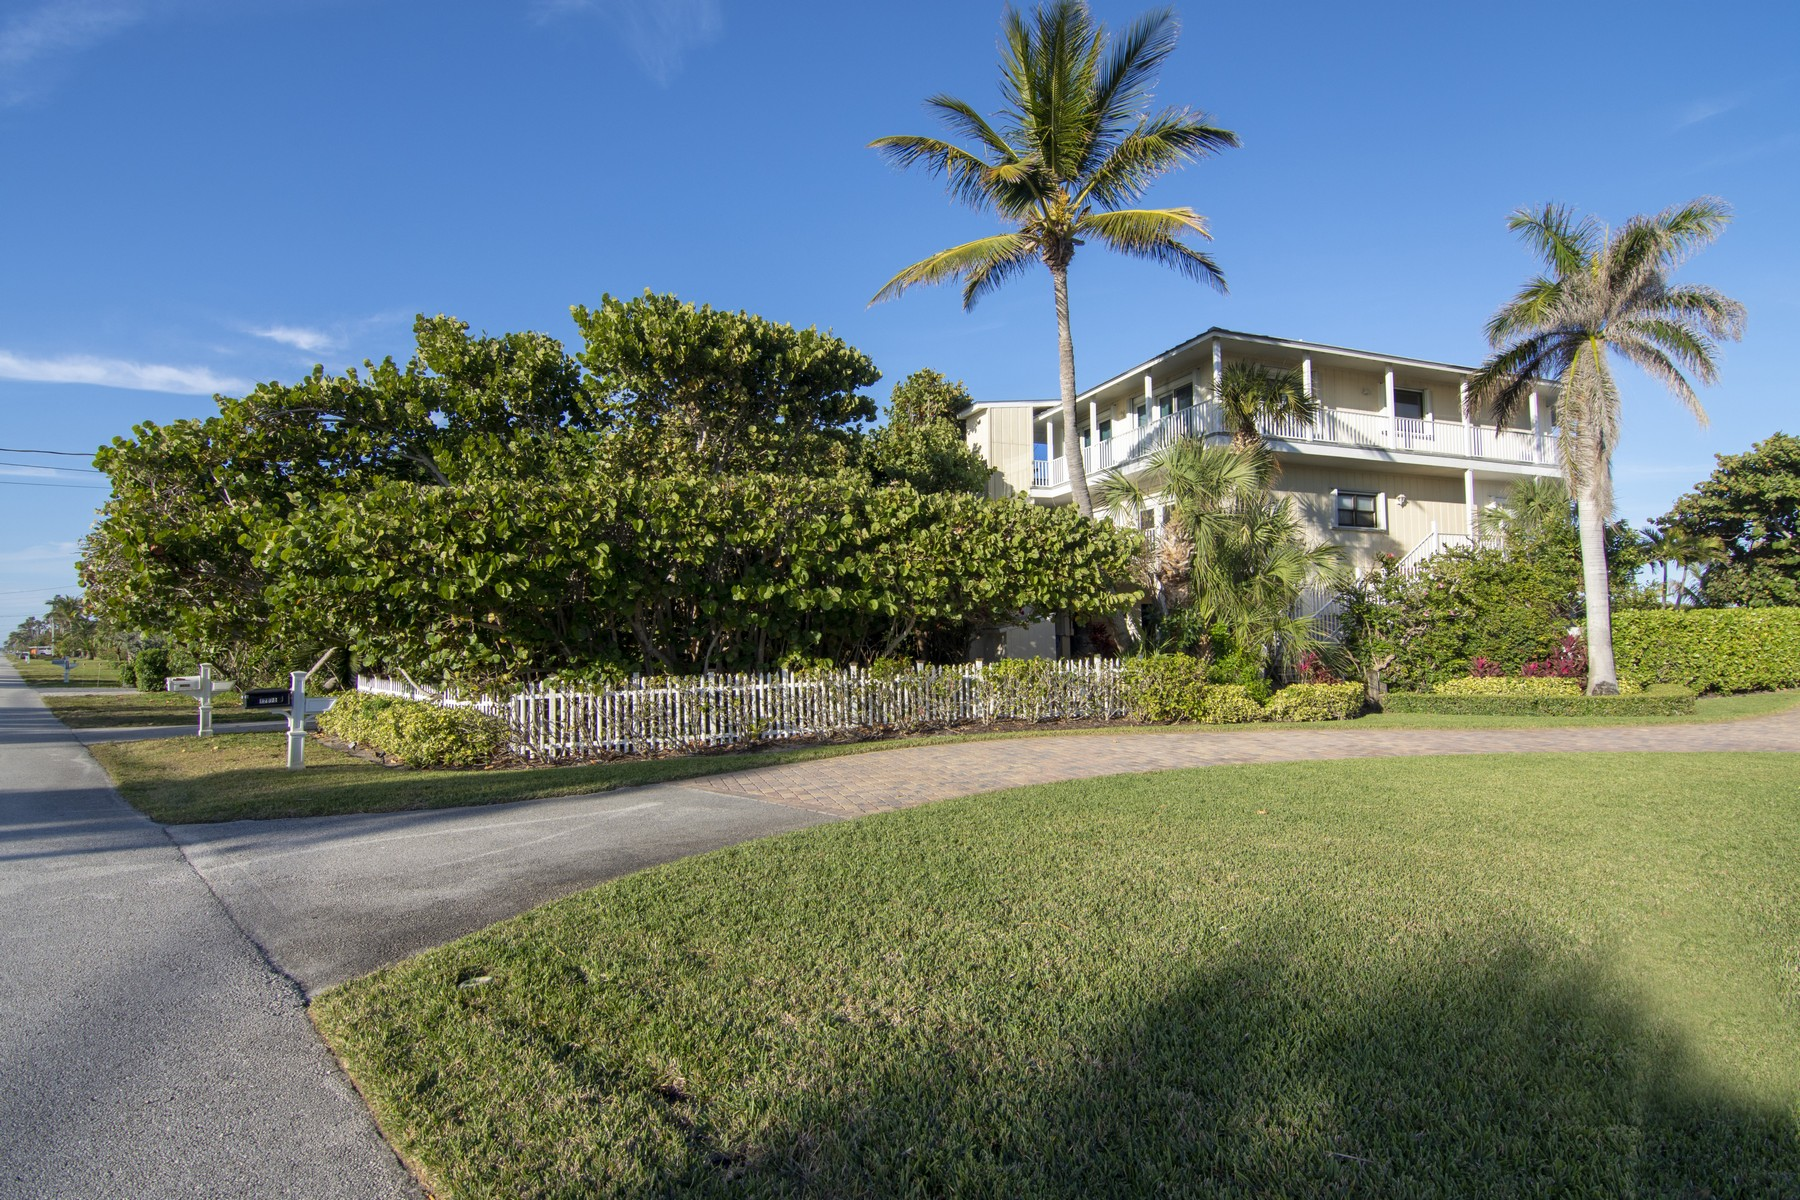 Property for Sale at Breathtaking Ocean to River Views! 12680 Highway A1A Vero Beach, Florida 32963 United States